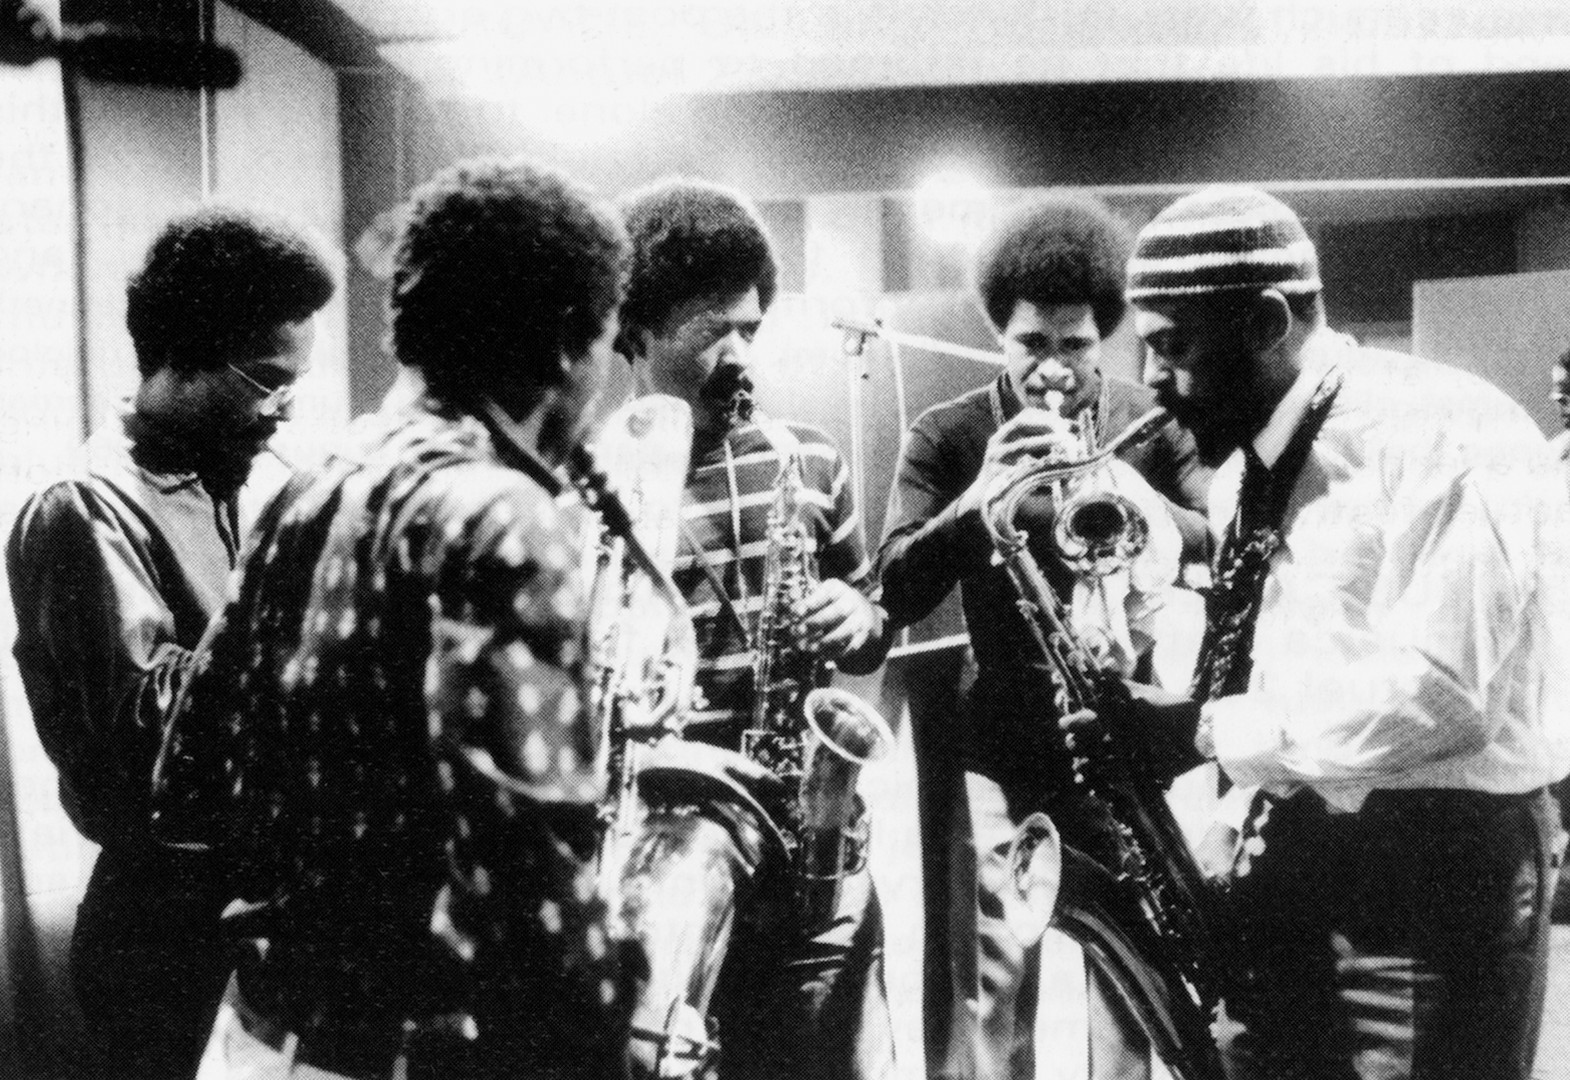 Lester Bowie, Roscoe Mitchell, Arthur Jones, Clifford Thornton, Archie Shepp